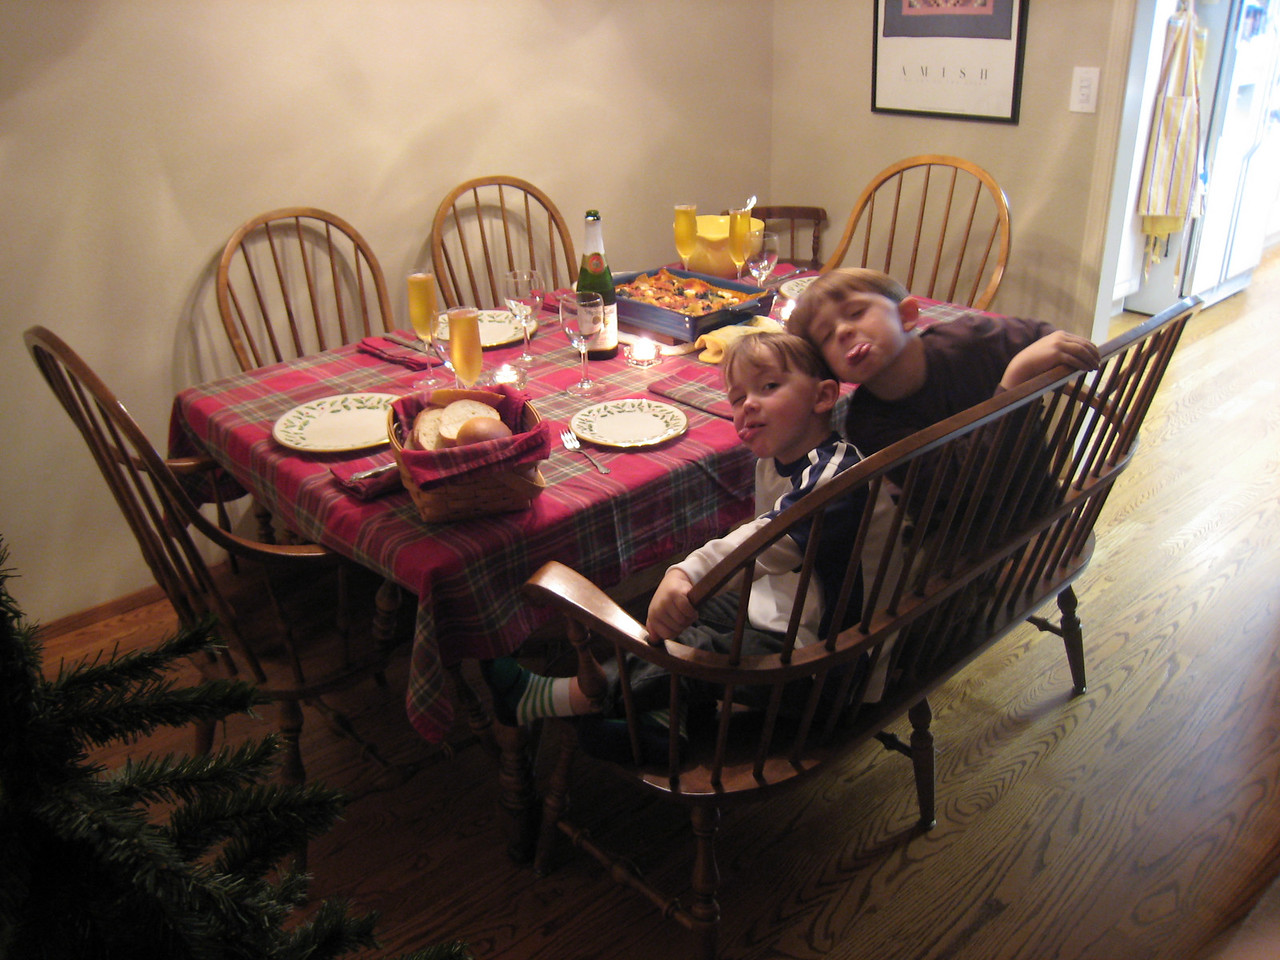 Crazy kids at the dinner table.